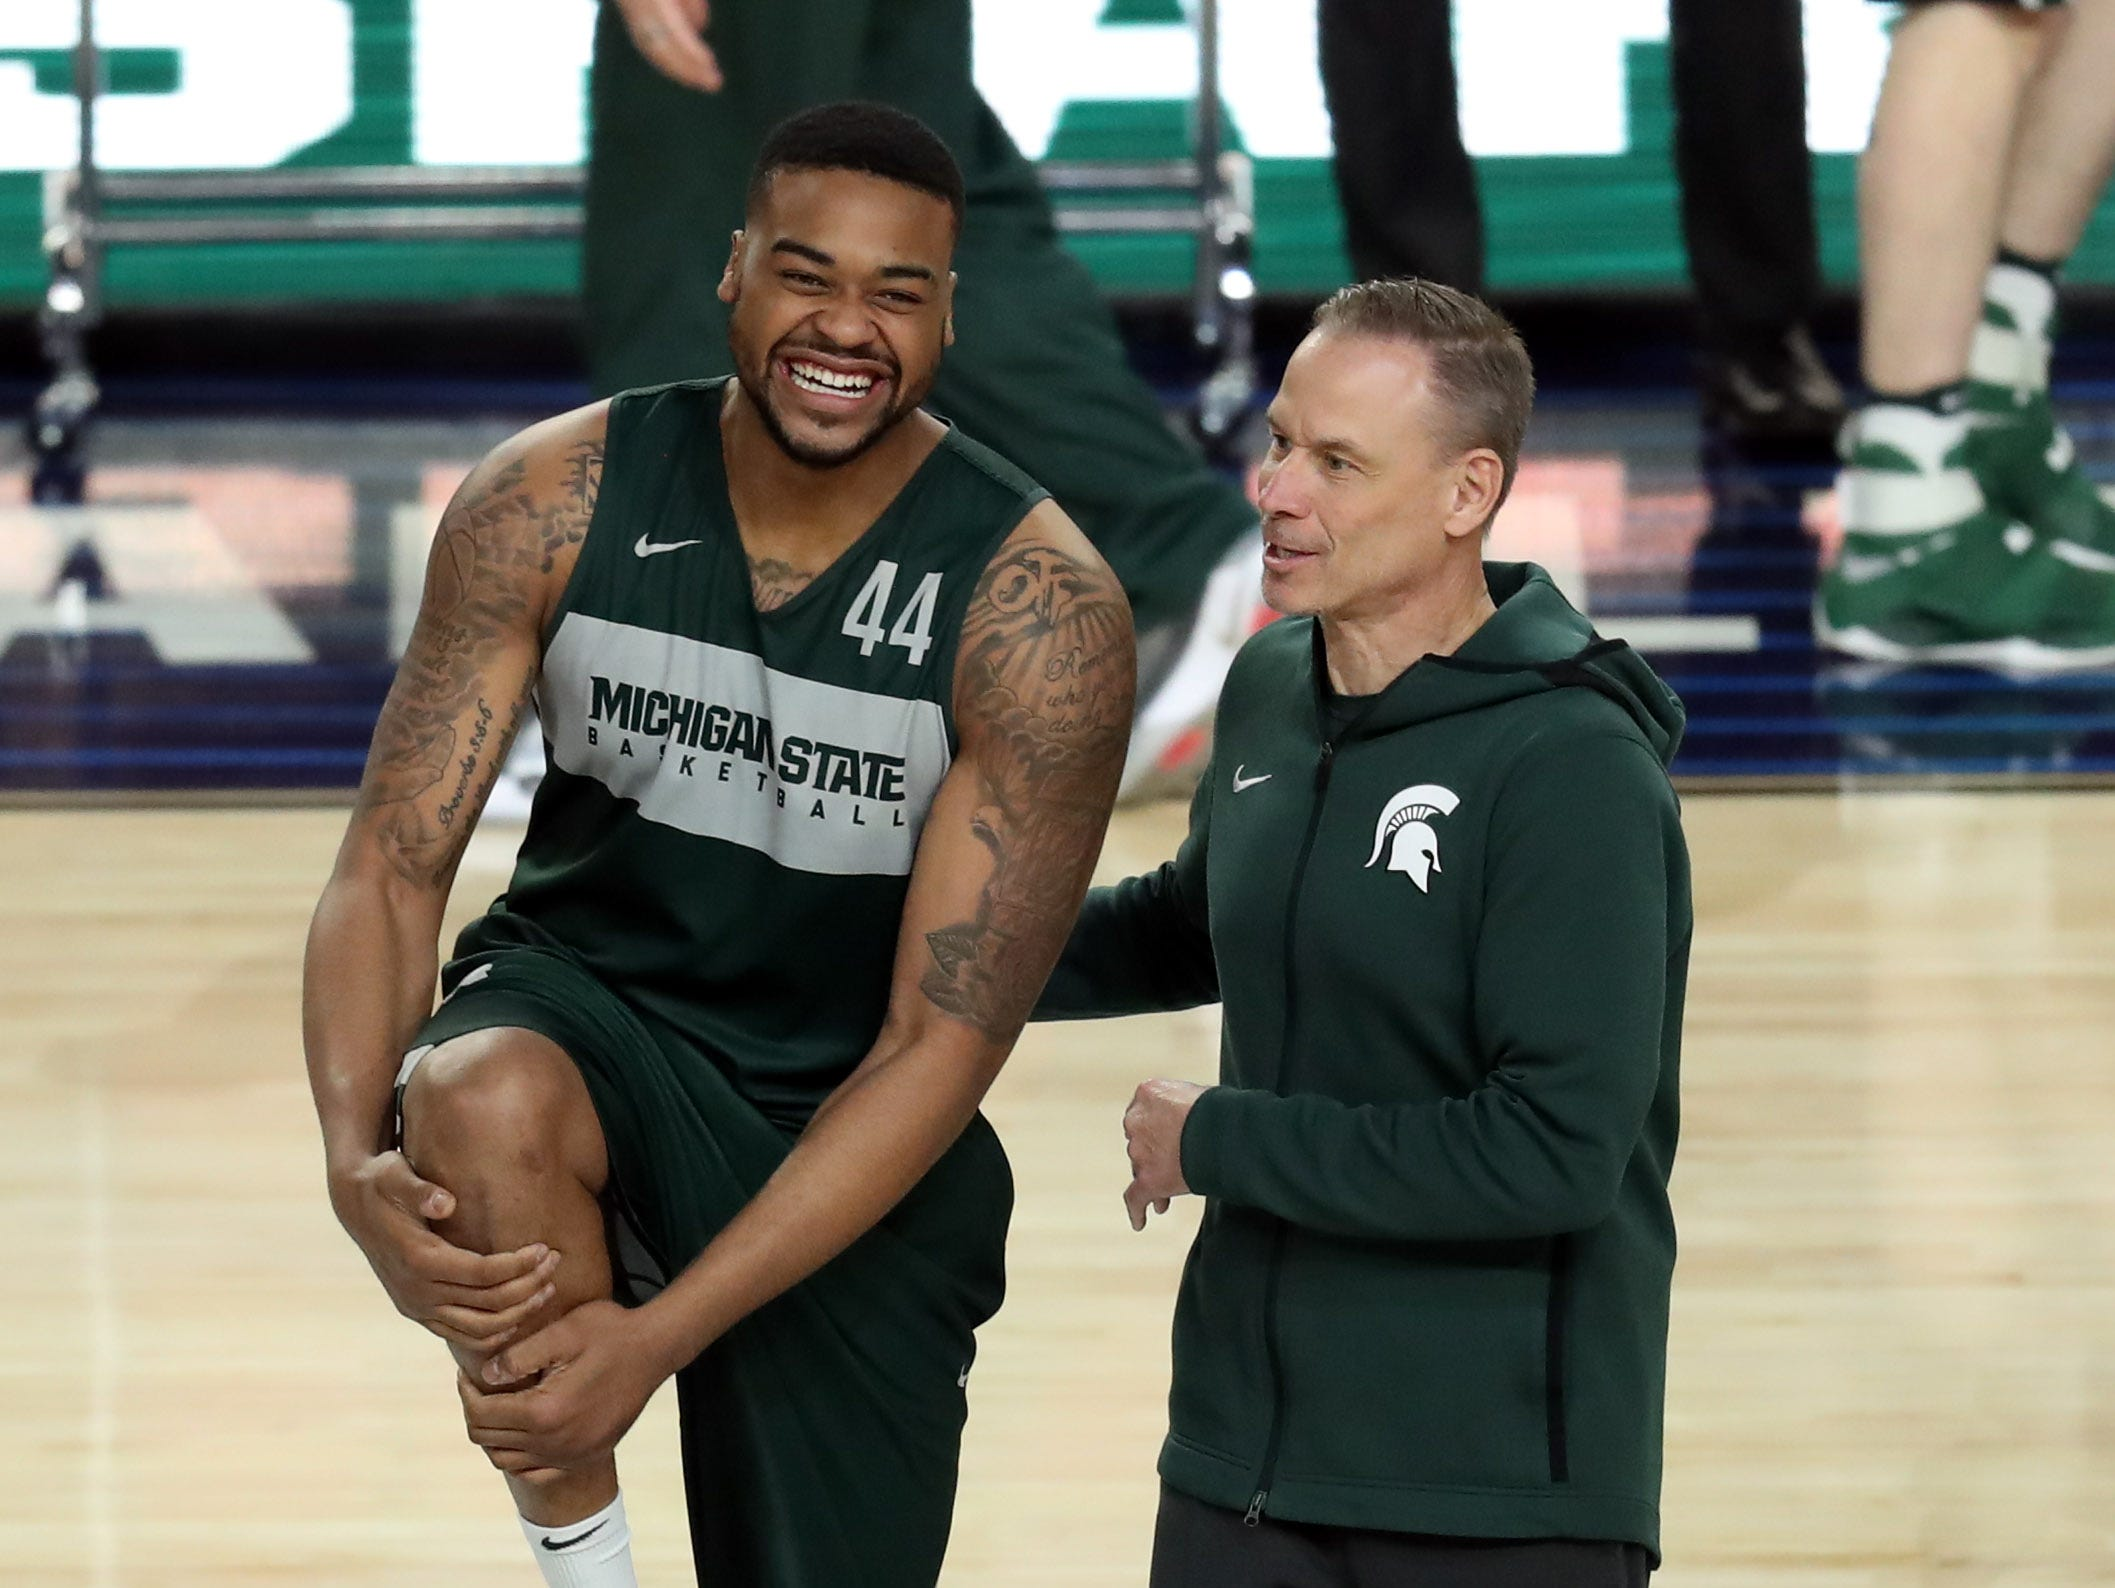 Apr 5, 2019; Minneapolis, MN, USA; Michigan State Spartans forward Nick Ward (44) with recruiting coordinator Doug Wojcik during practice for the 2019 men's Final Four at US Bank Stadium. Mandatory Credit: Brace Hemmelgarn-USA TODAY Sports